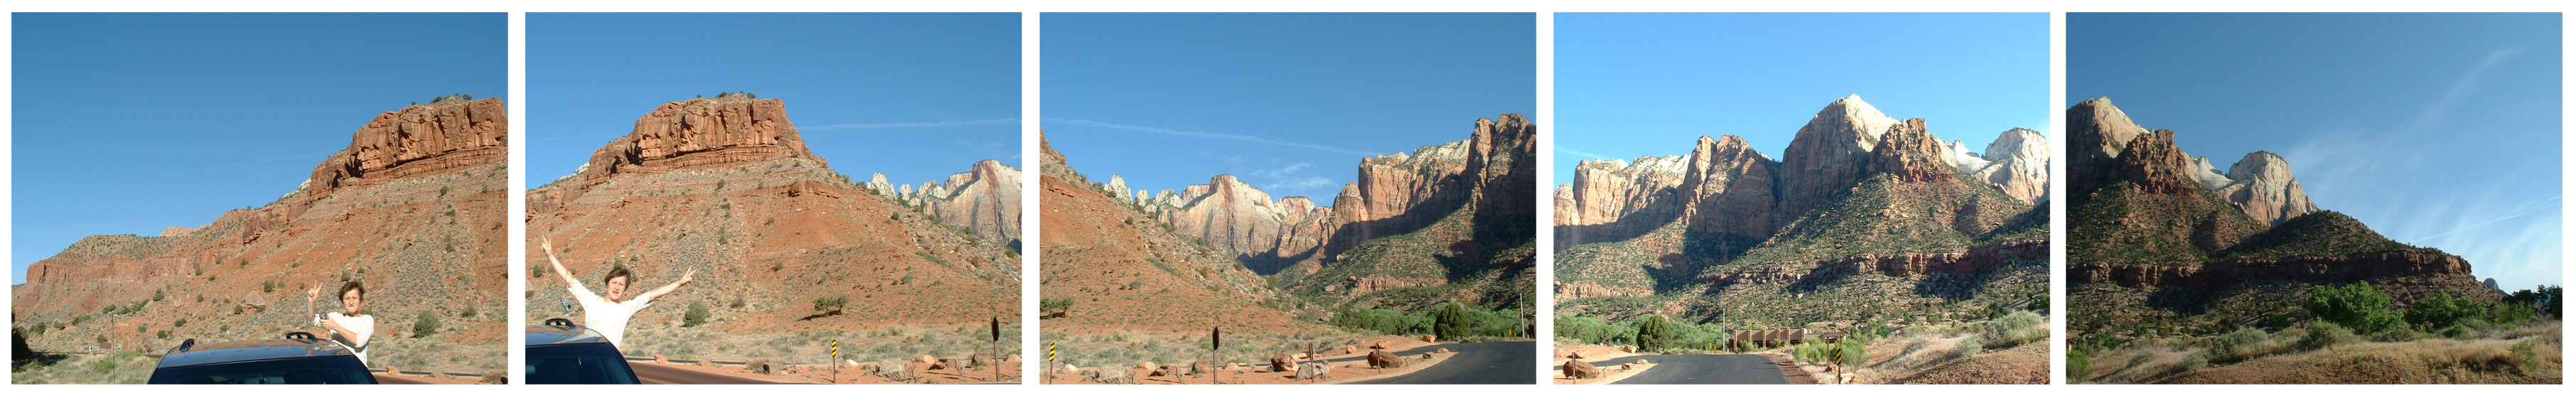 5 images from Zion